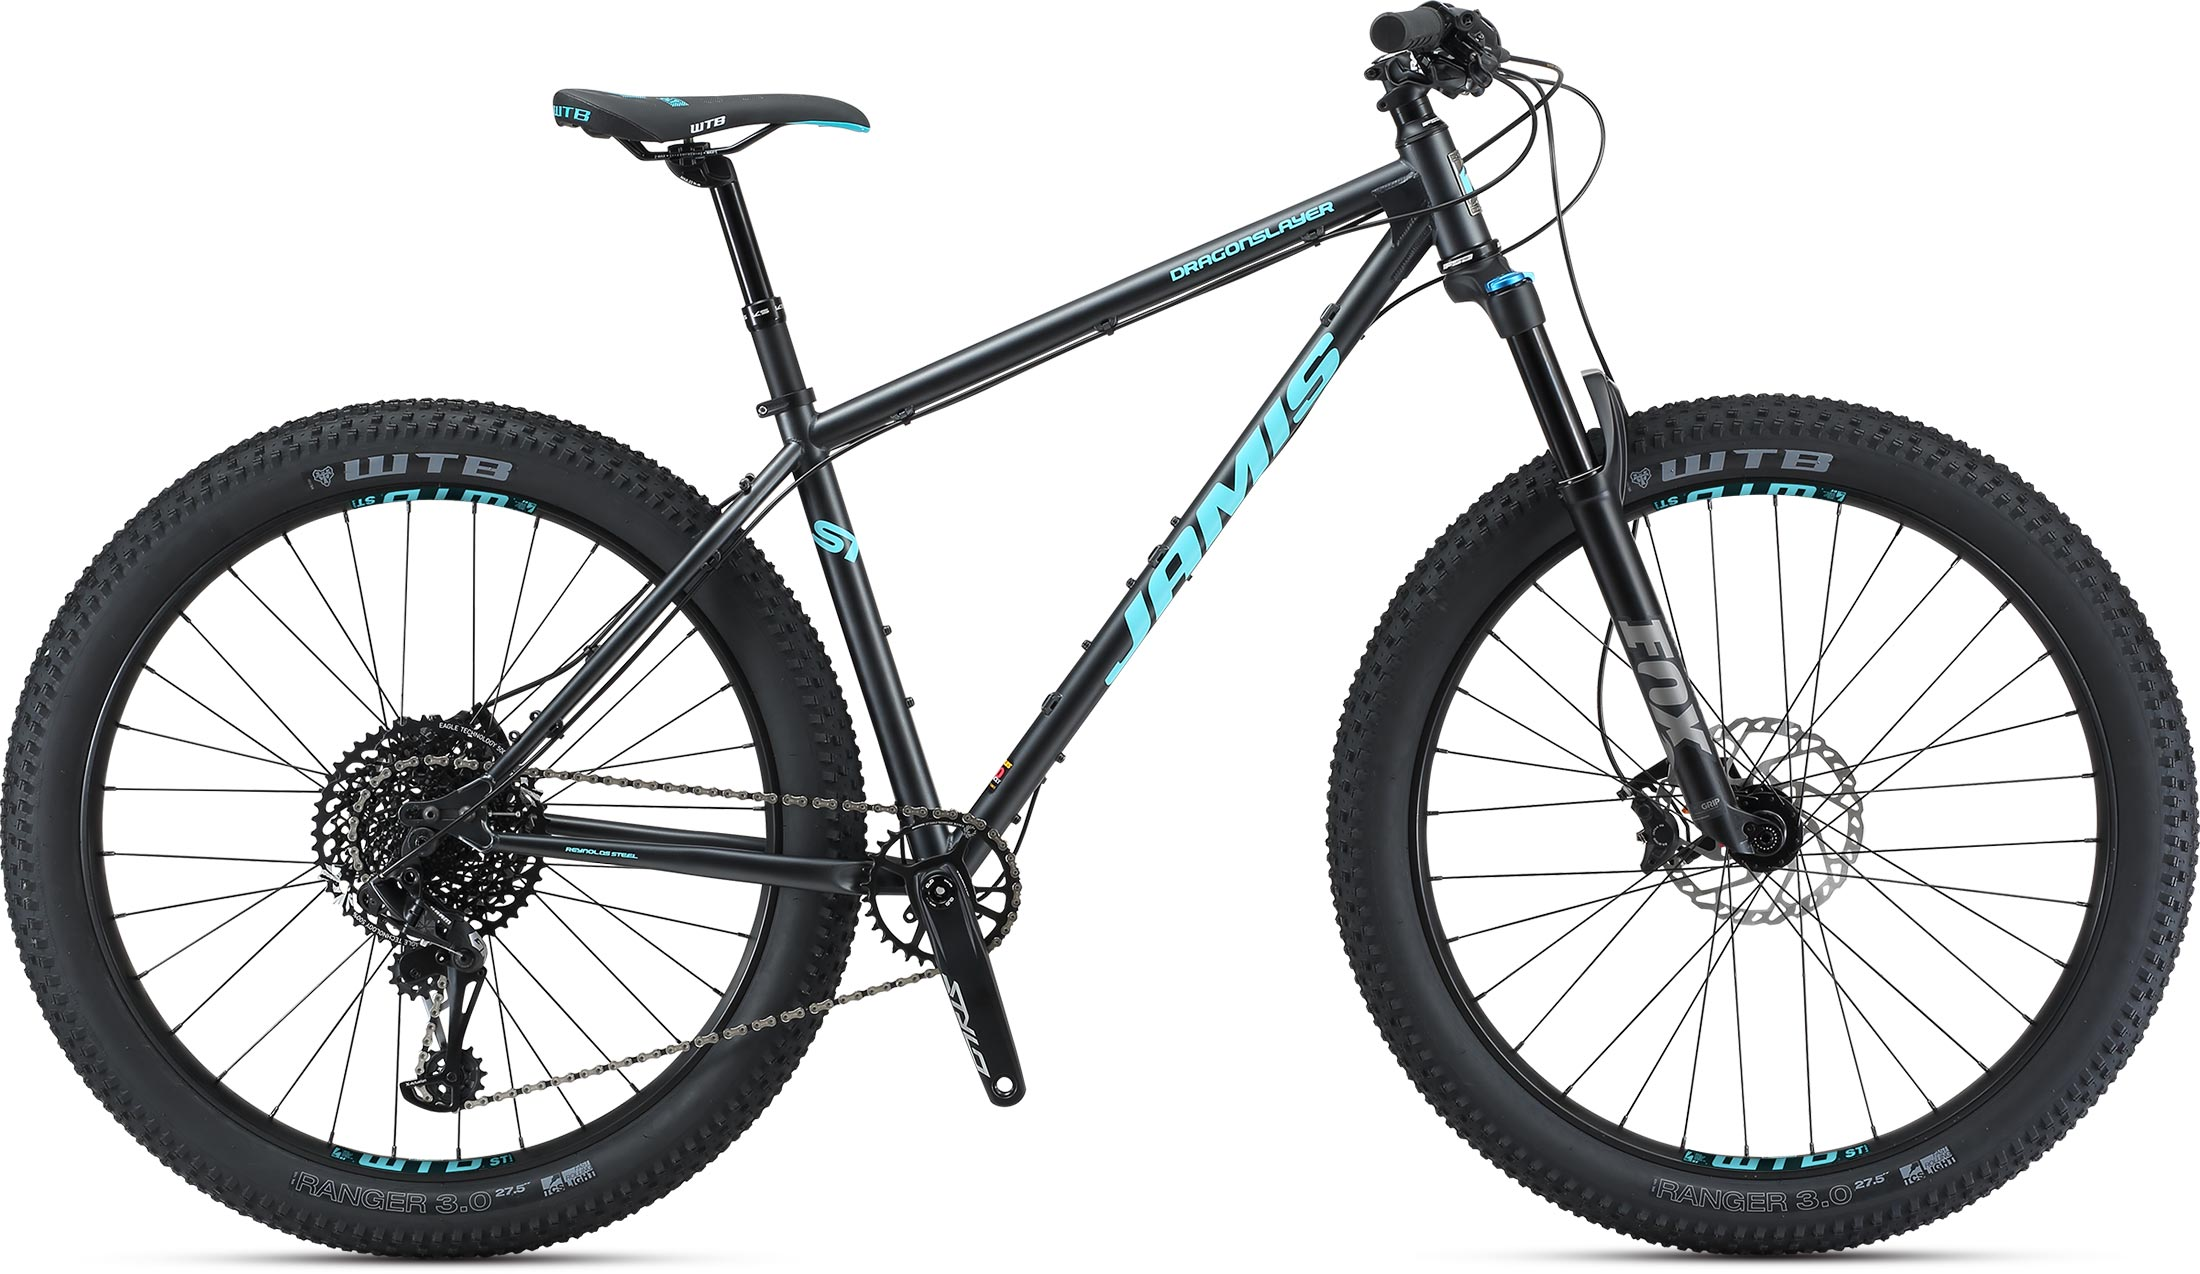 "Jamis Dragonslayer S1 Mid-Fat 27.5"" 650b MTB Bike 15"" 1x 12 Spd"